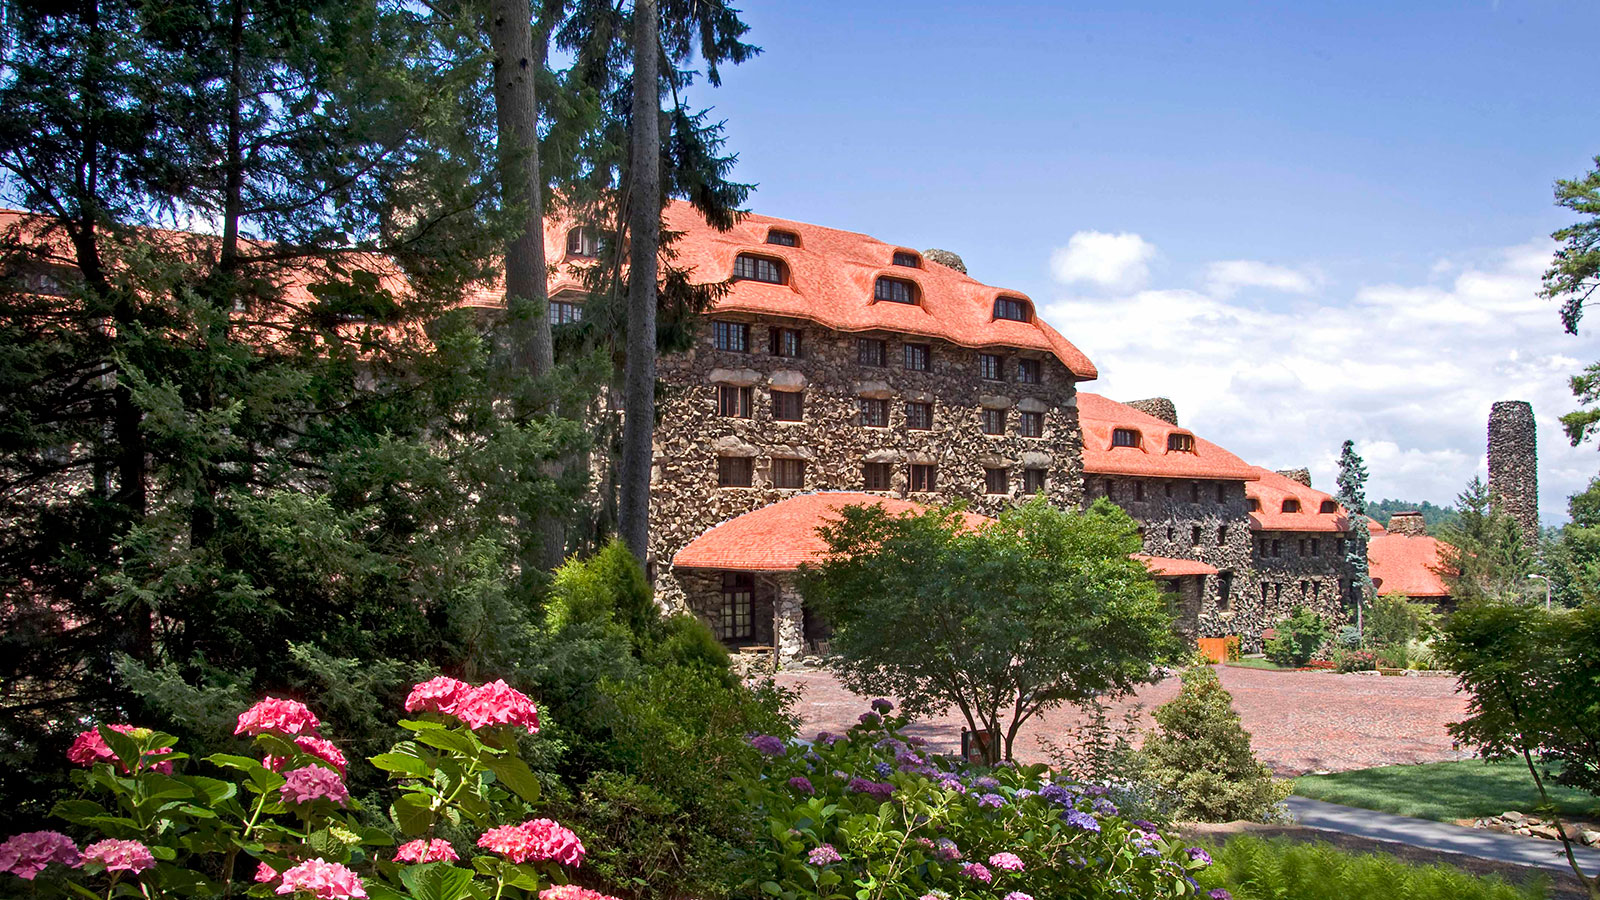 Image of Hotel Exterior The Omni Grove Park Inn, 1913, Member of Historic Hotels of America, in Asheville, North Carolina, Overview